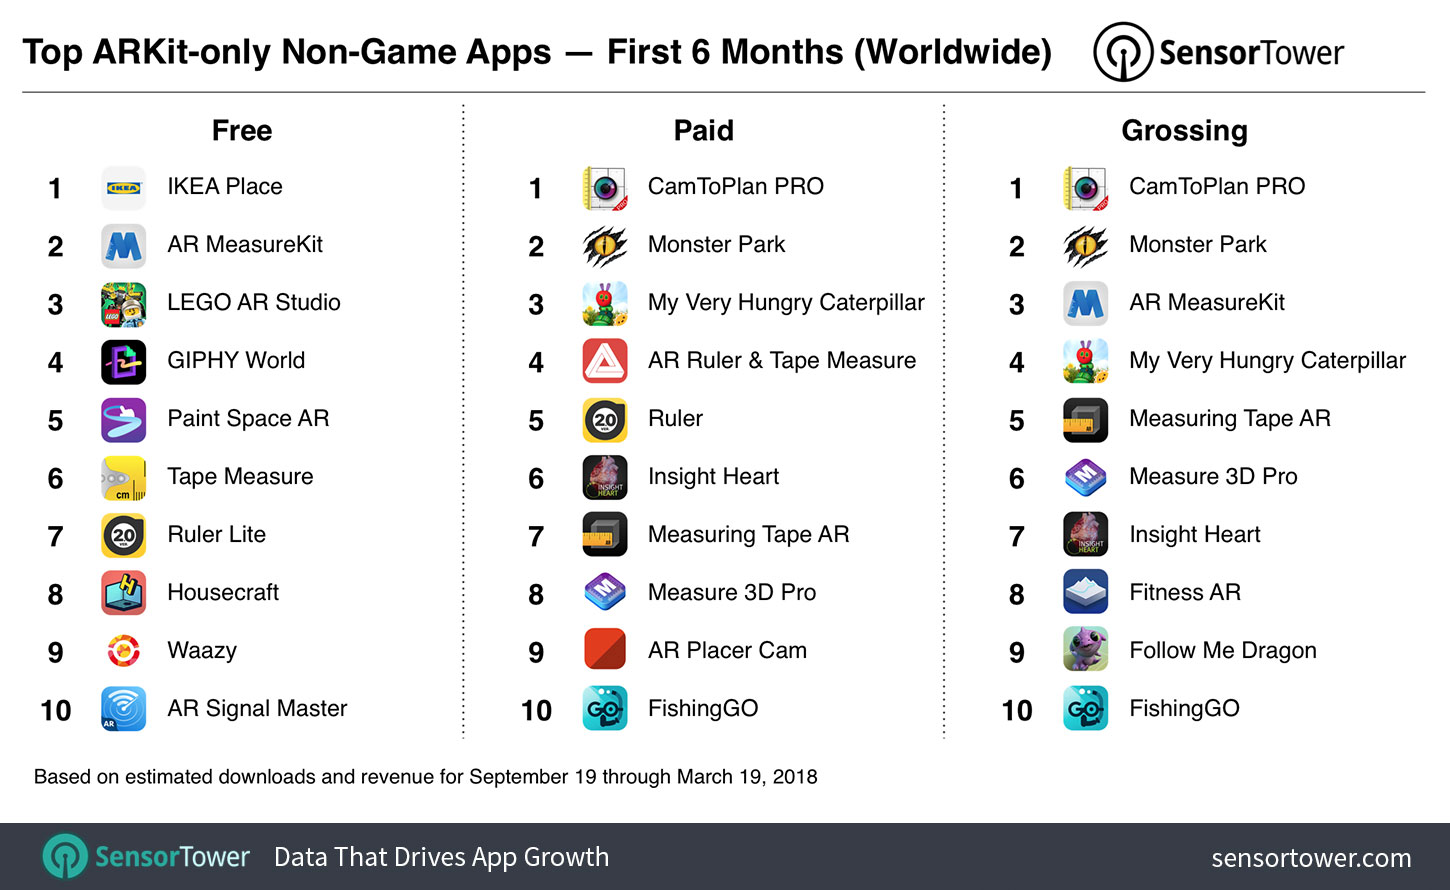 Ranking of top free, paid, and grossing ARKit non-game apps overall for September 19, 2017 to March 19, 2018  - top arkit non games six months - ARKit-only Apps Surpass 13 Million Downloads in First Six Months, Nearly Half from Games